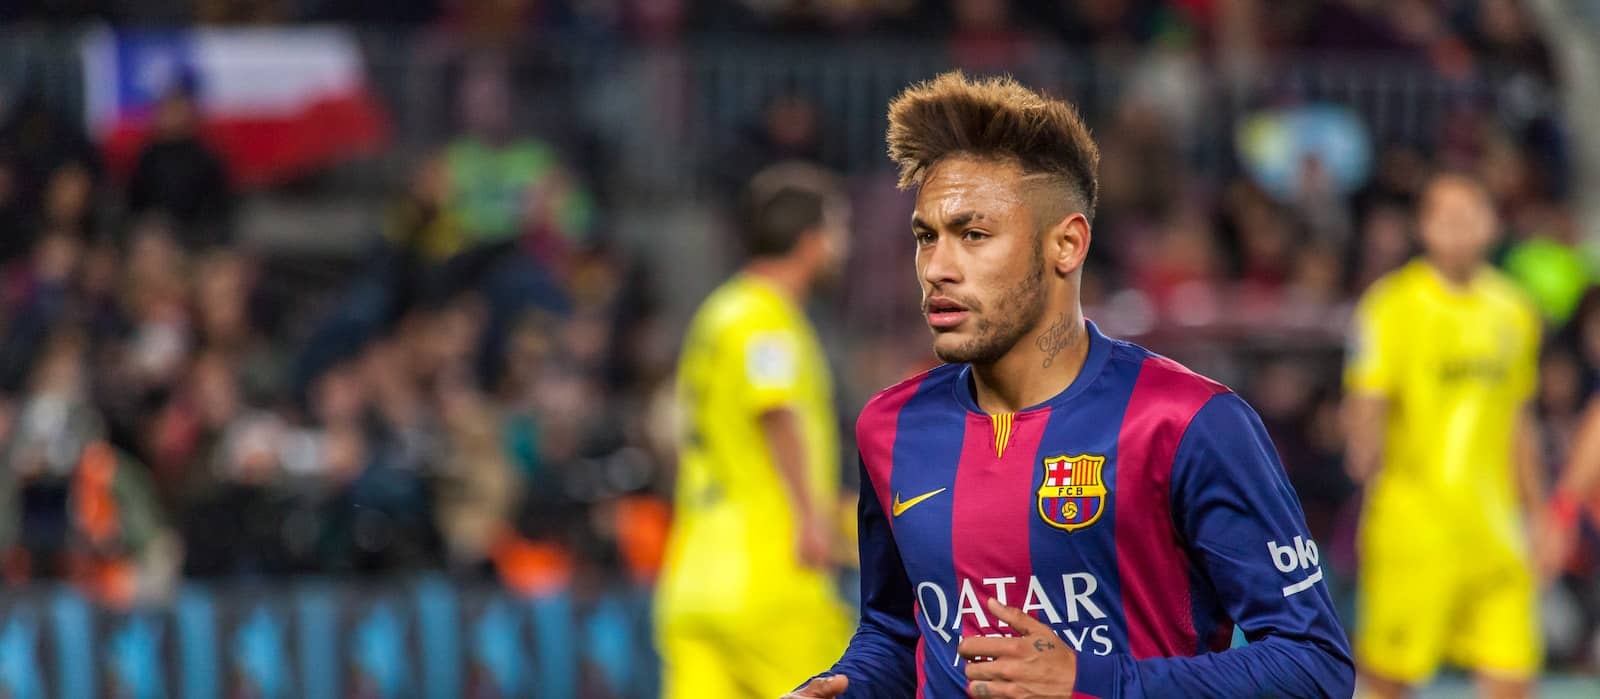 Manchester United send agent to Brazil to clinch Neymar deal